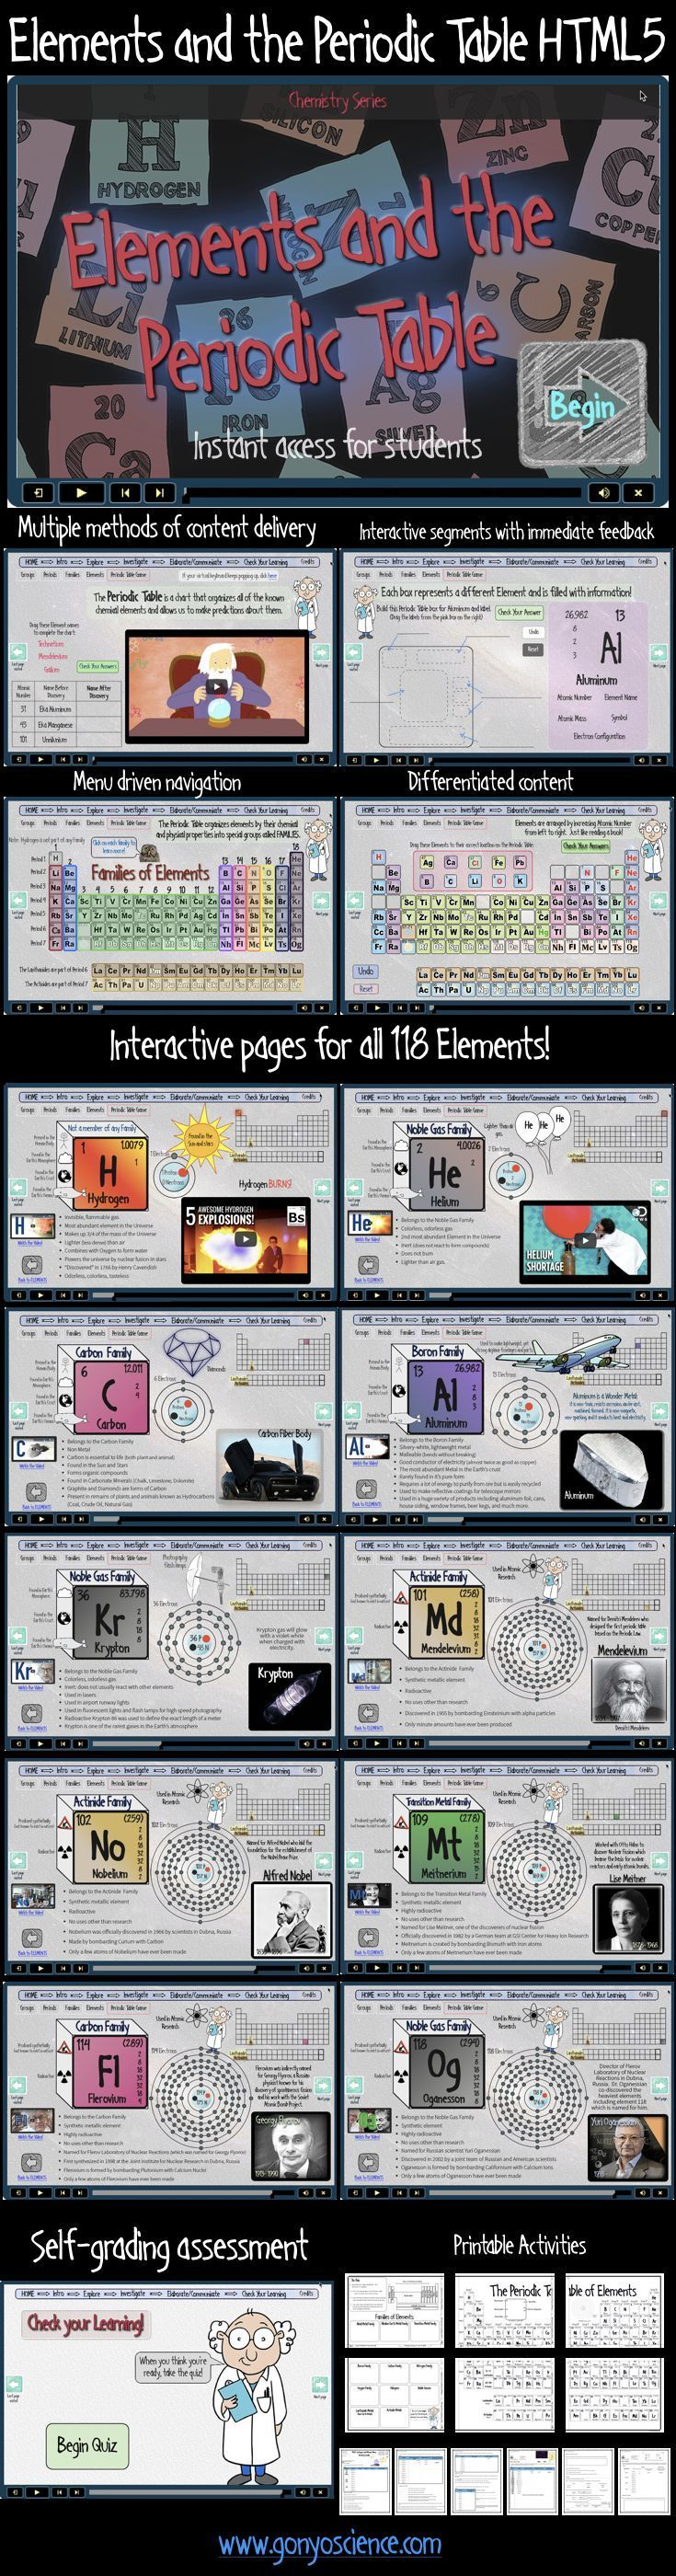 Elements and the periodic table interactive html5 periodic table elements and the periodic table interactive html5 periodic table activities and students urtaz Choice Image